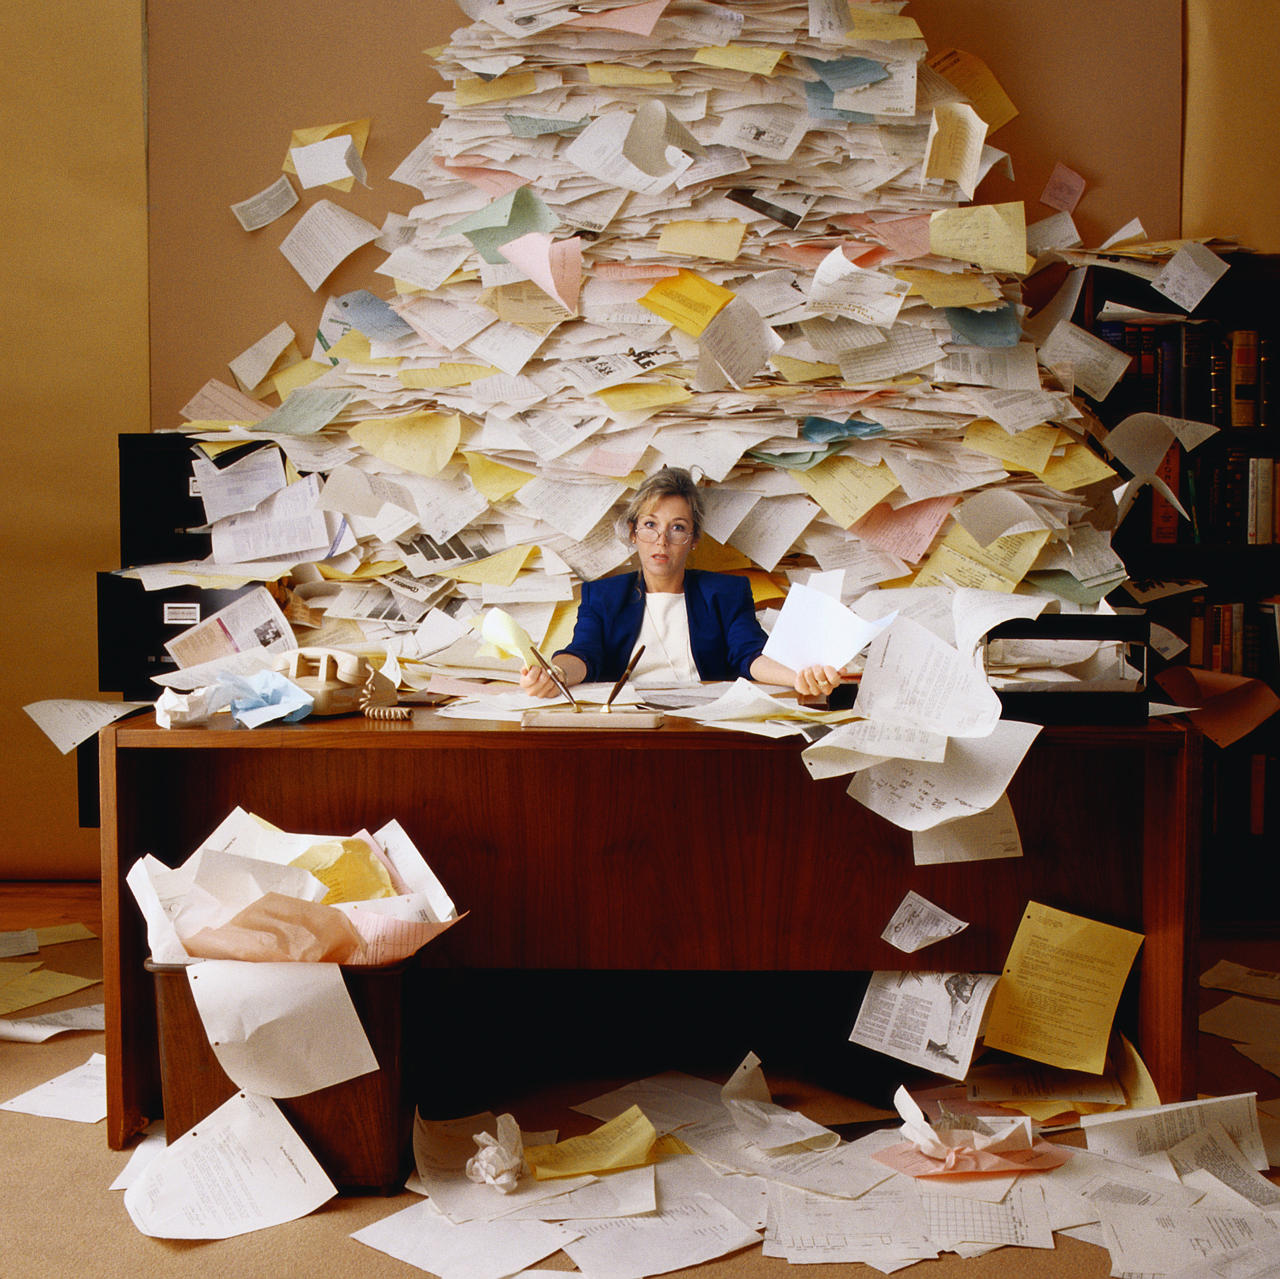 Messy desk with high stack of paper